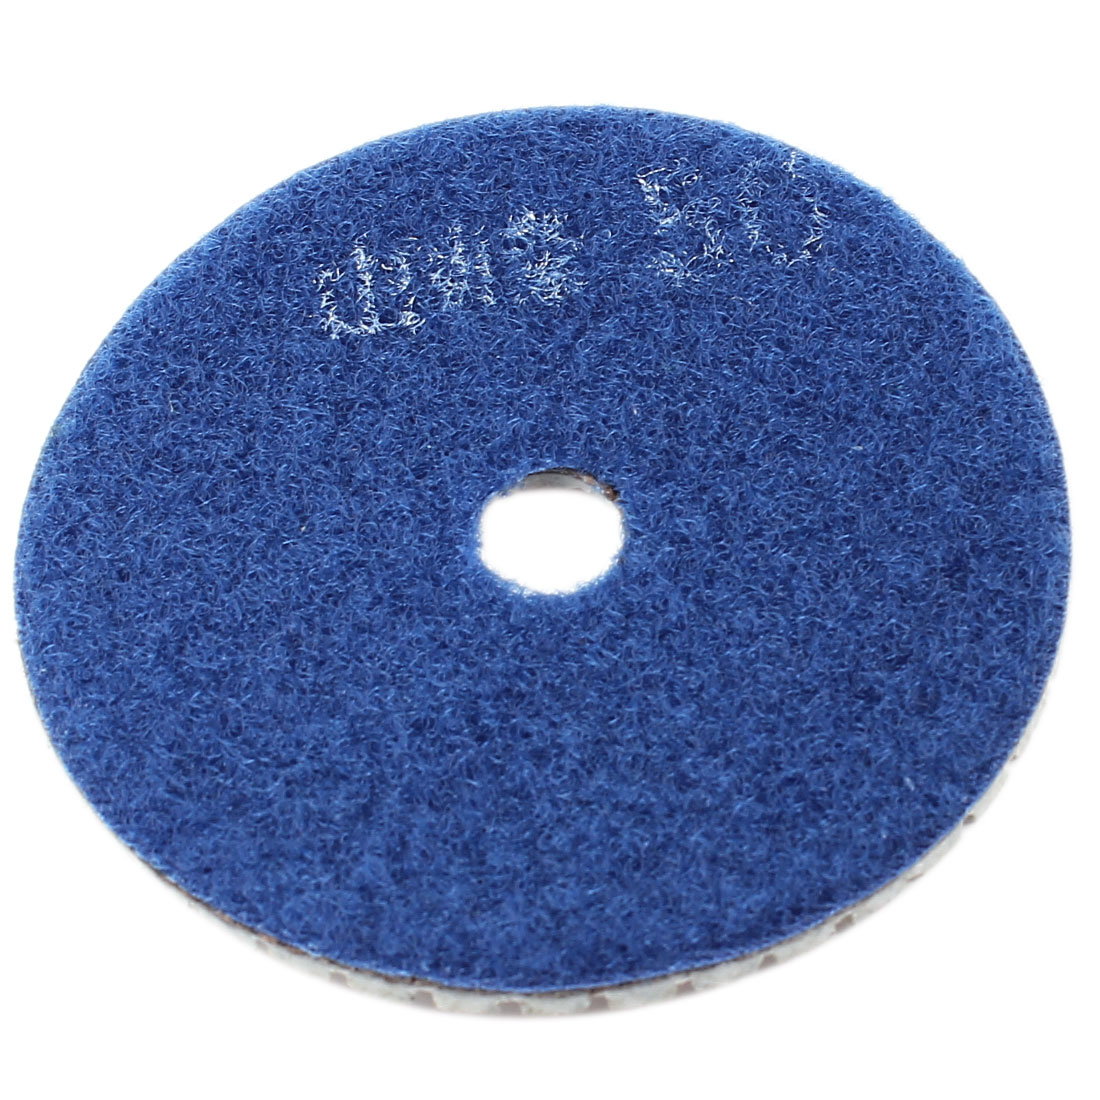 Stone Marble 50 Grit Wet Dry Diamond Resin Polishing Pad Blue Gray